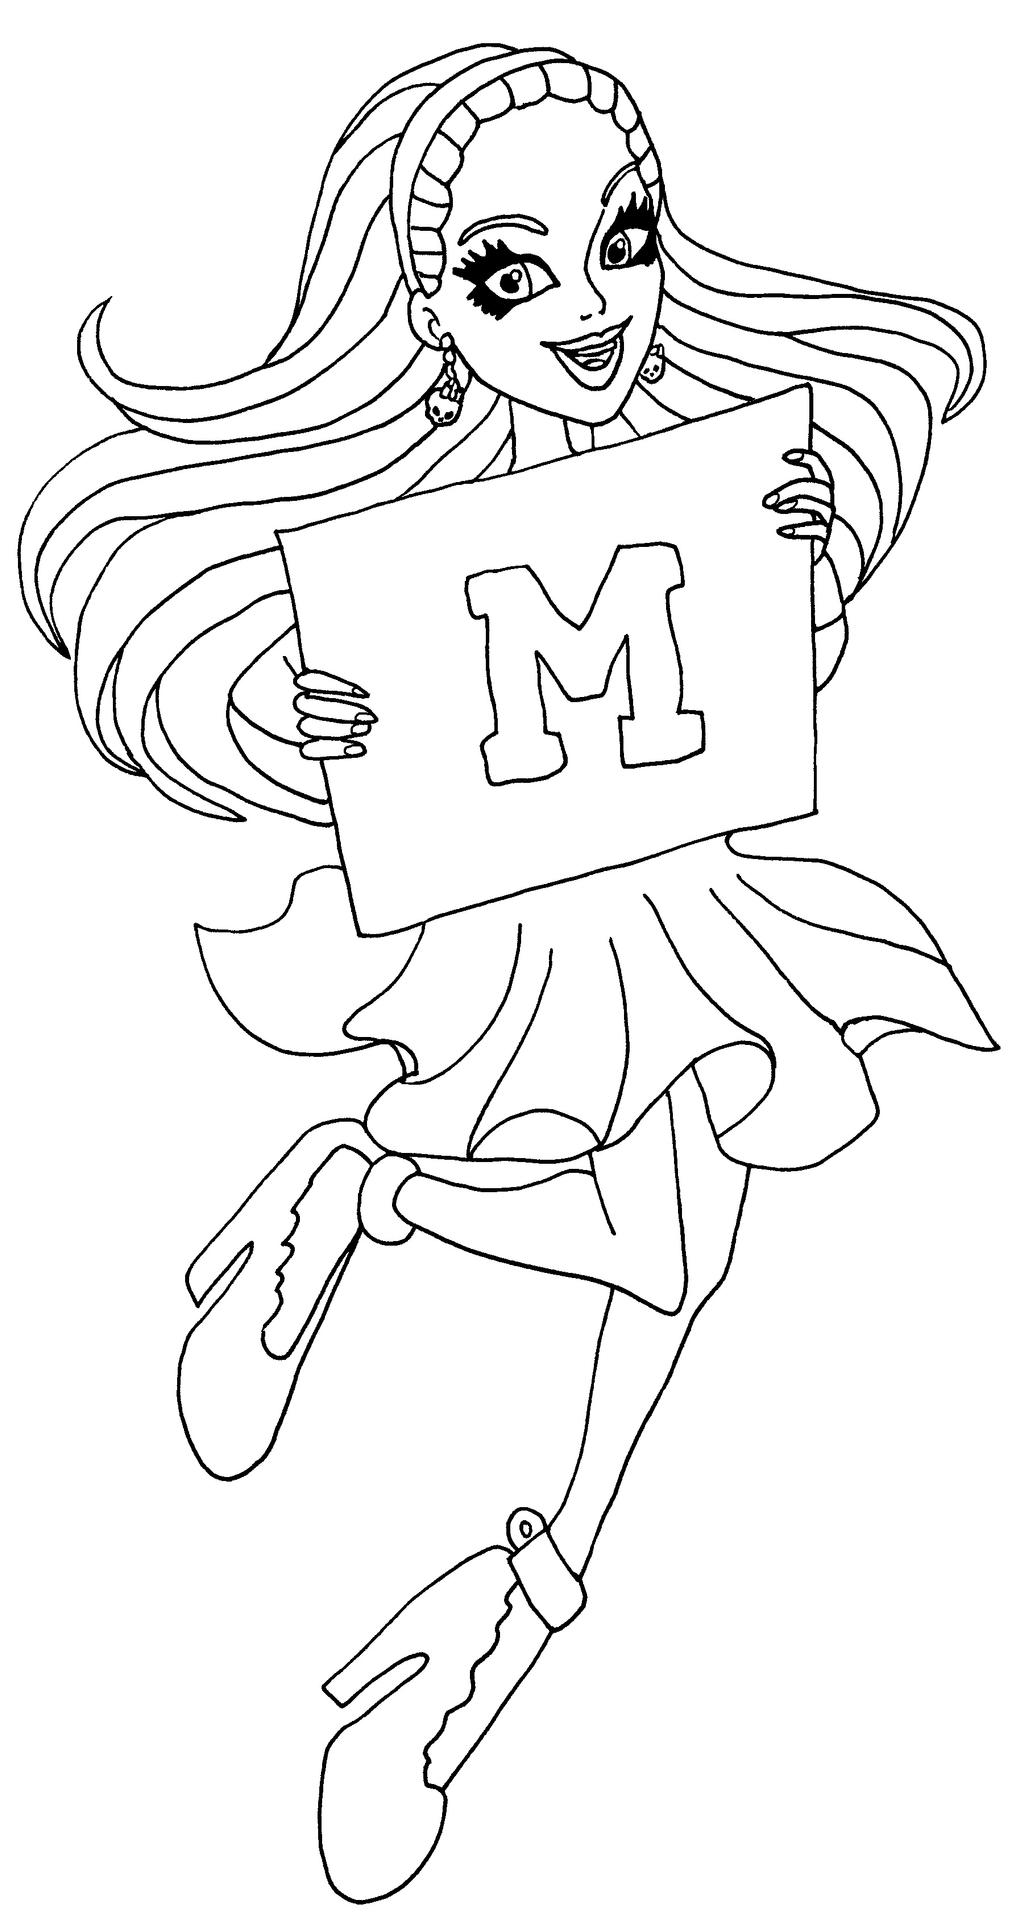 wally the green monster coloring pages - photo #21